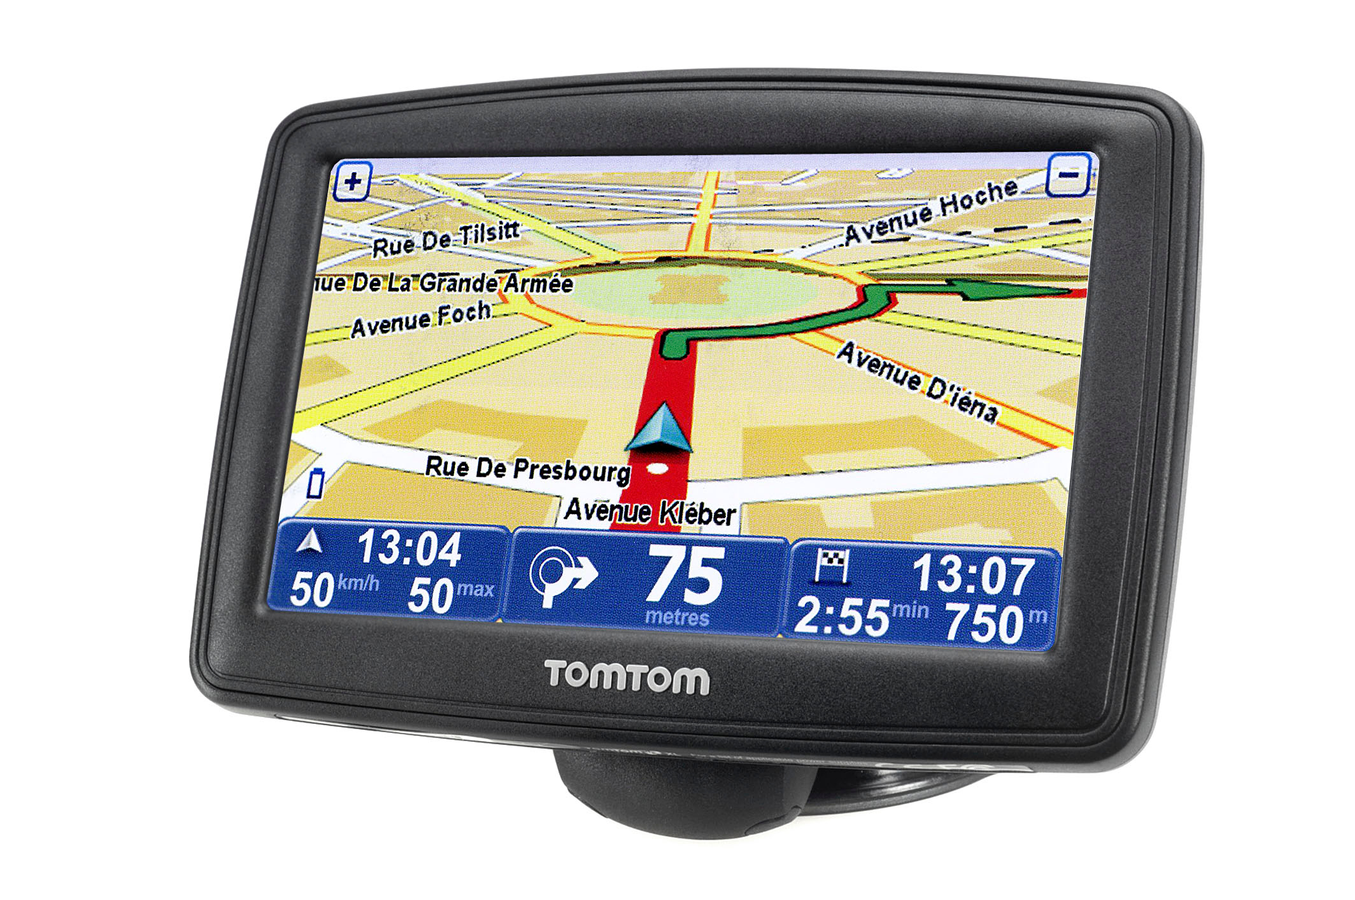 tomtom mise a jour gratuite mise jour gps tomtom renault gratuit gps tomtom xl classic mise. Black Bedroom Furniture Sets. Home Design Ideas